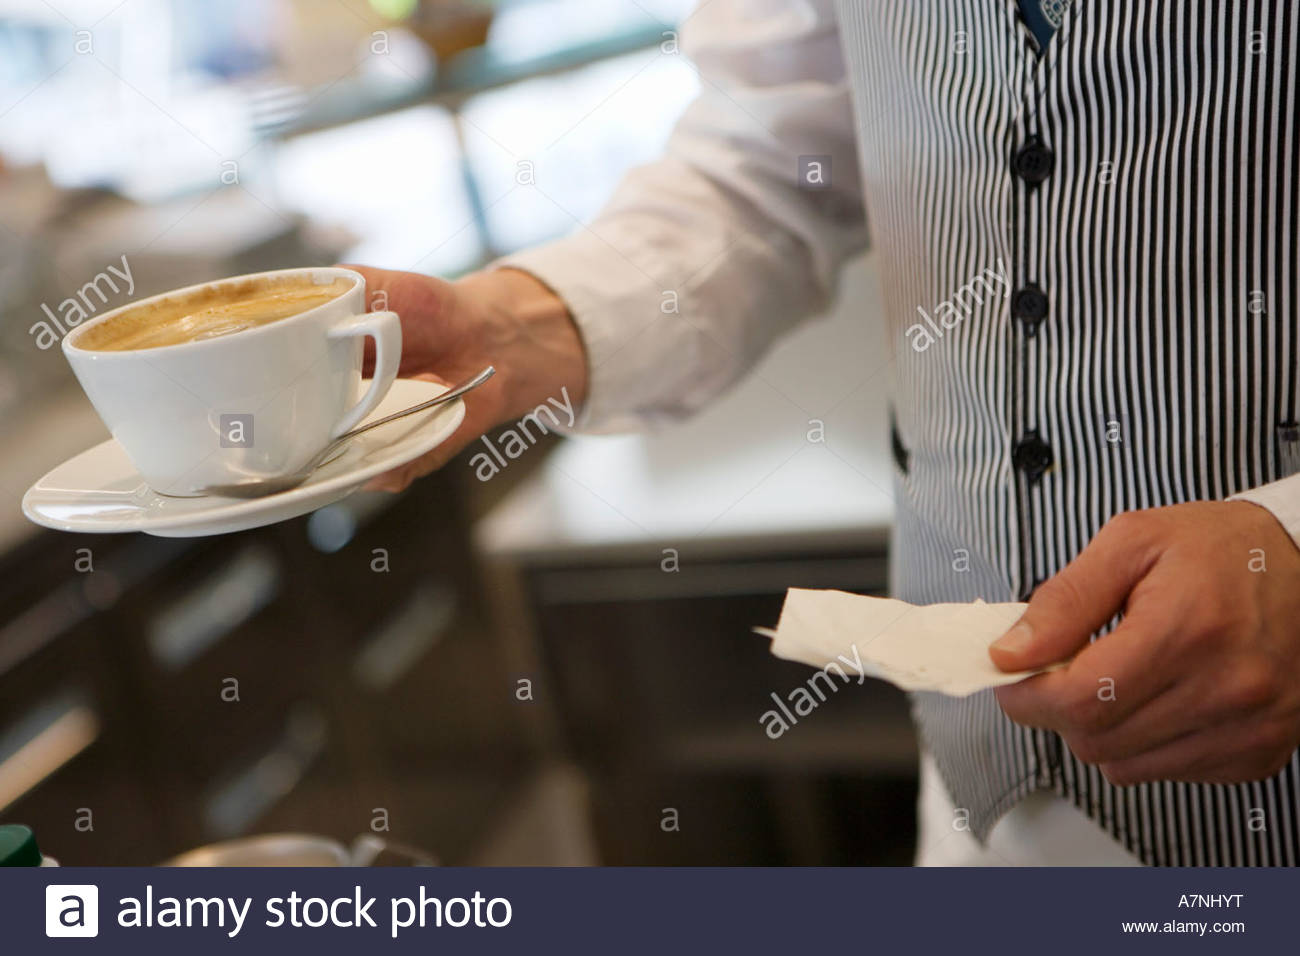 Waiter serving cup of coffee in cafe holding check receipt side view mid section close up - Stock Image